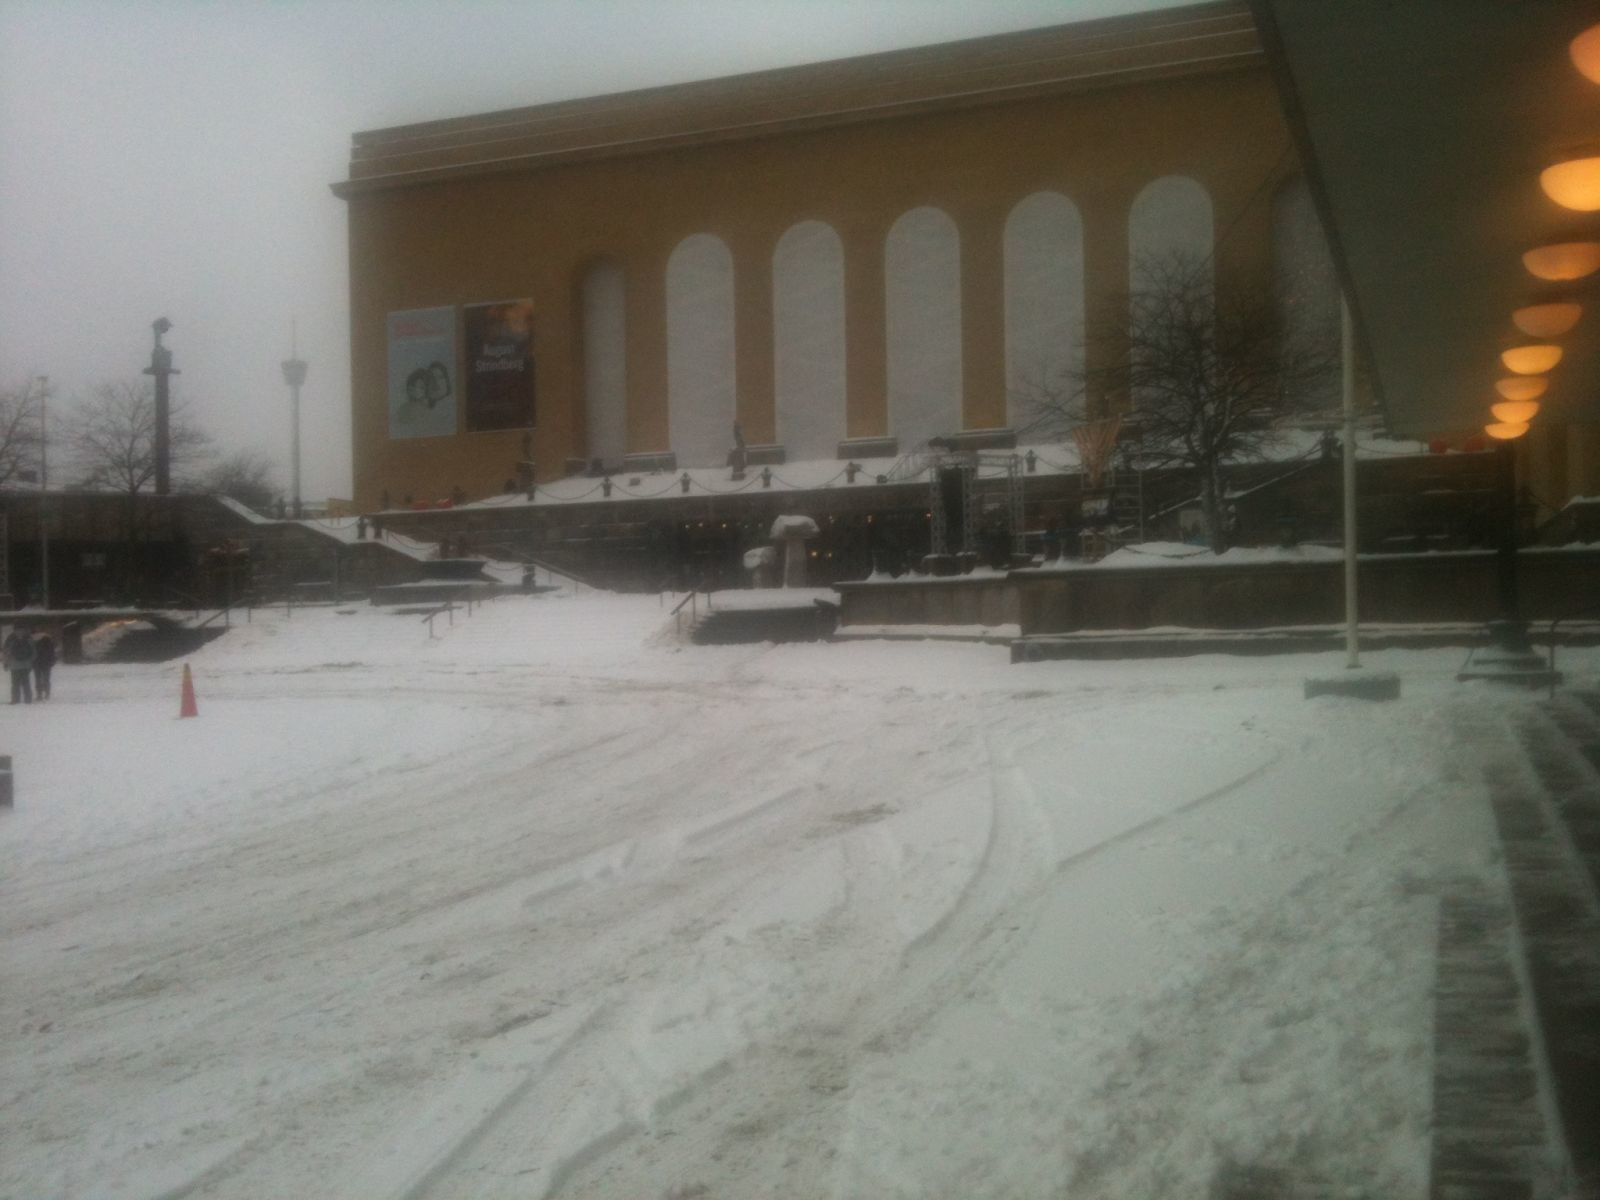 Gothenburg snow